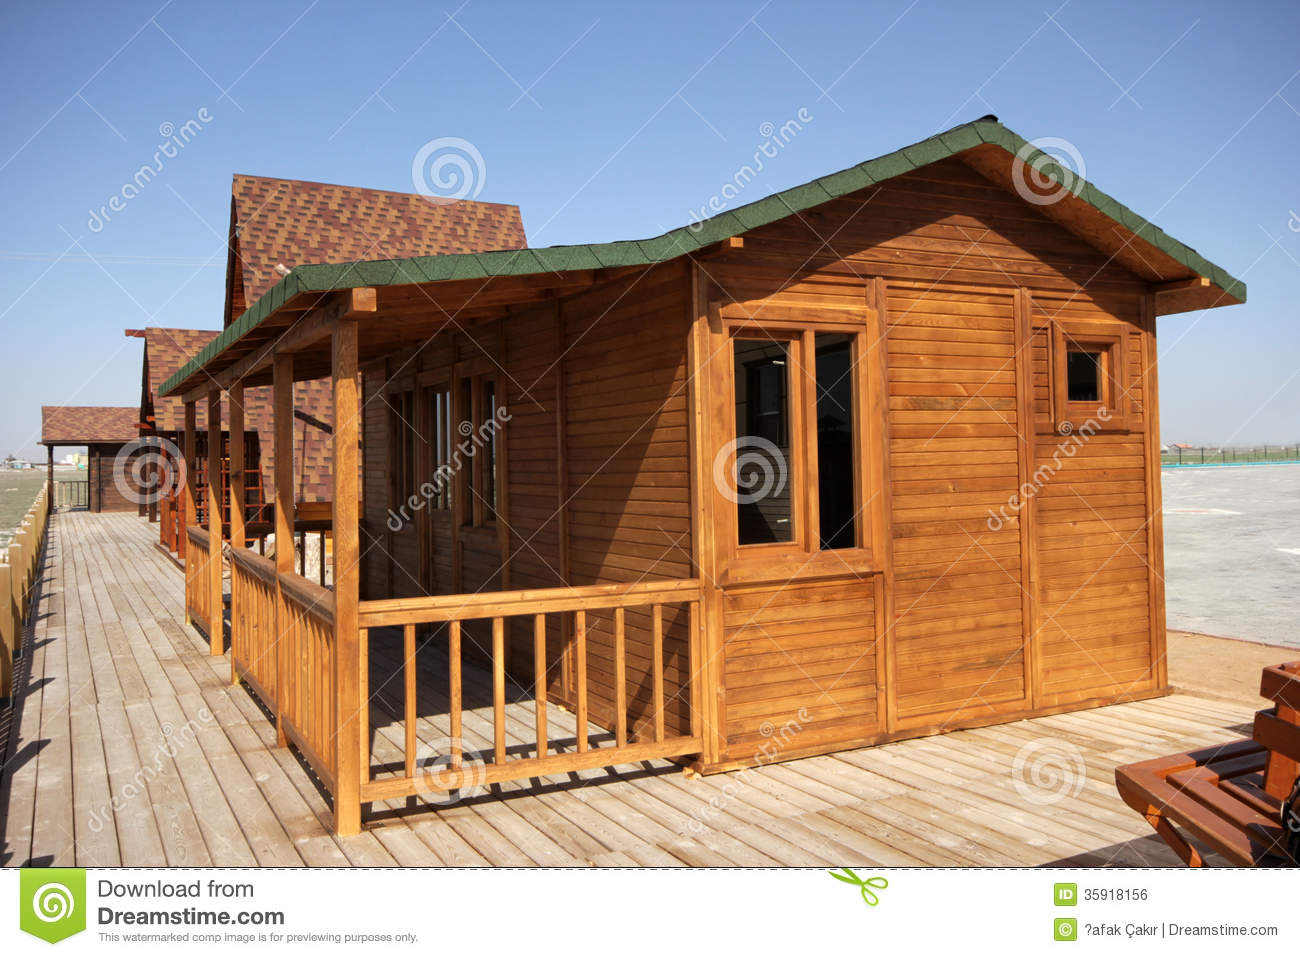 Wooden houses royalty free stock image image 35918156 for Small house design made of wood